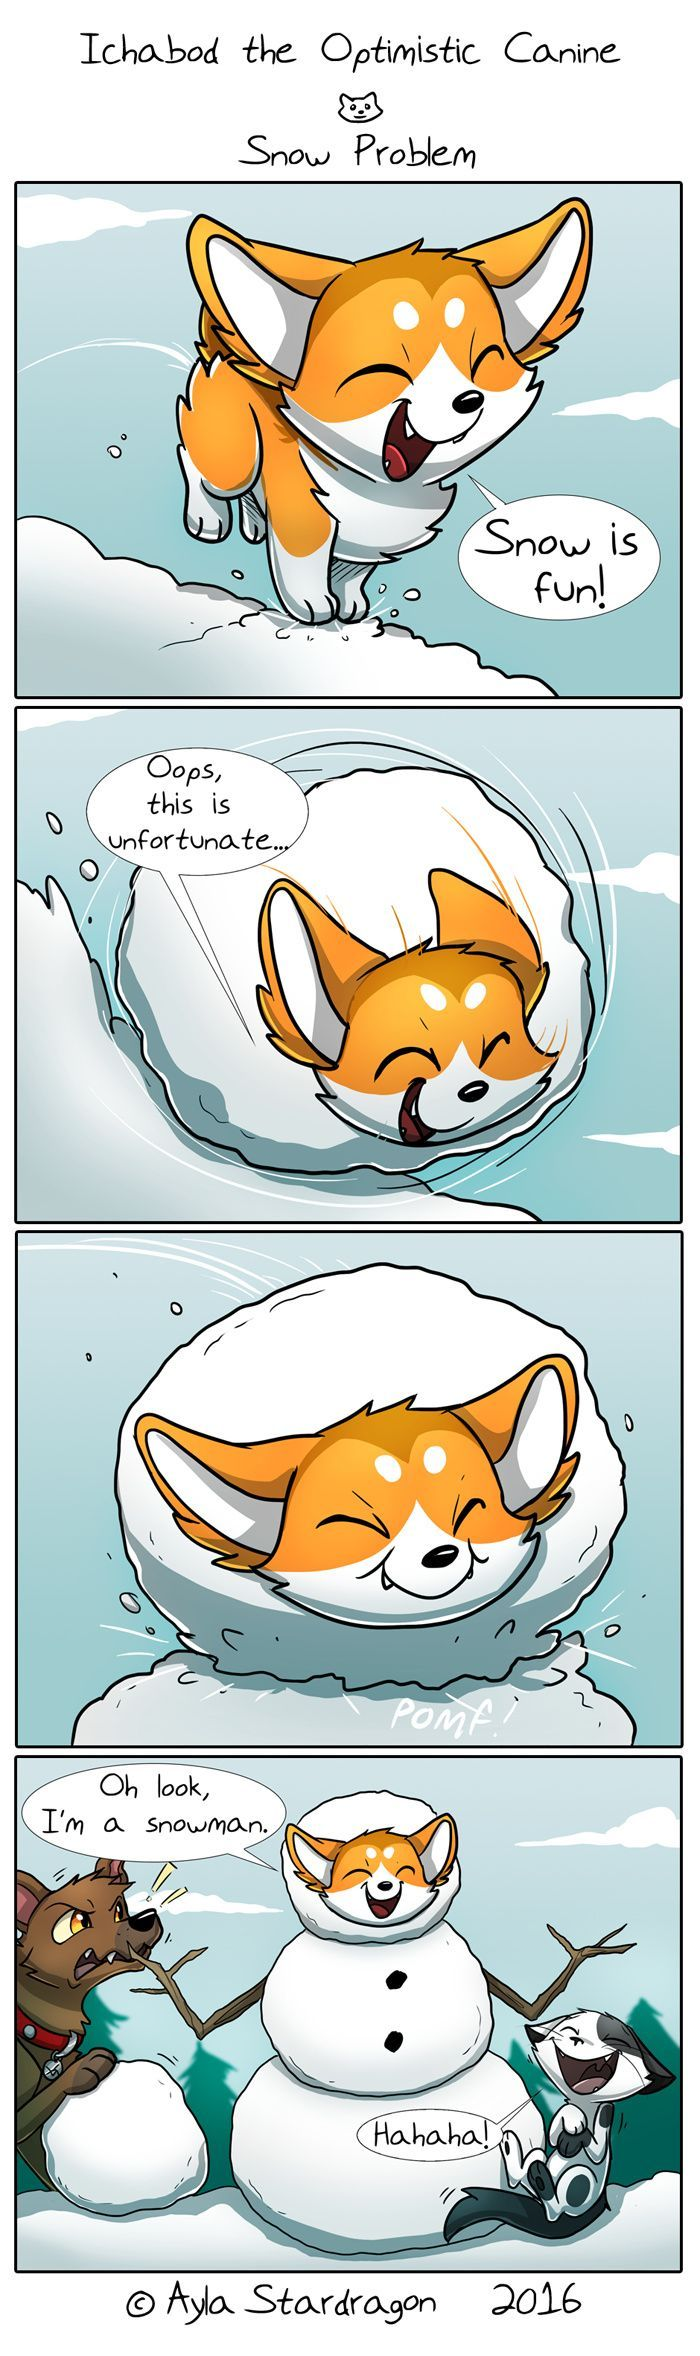 Ichabod the Optimistic Canine :: Snow Problem   Tapastic Comics - image 1